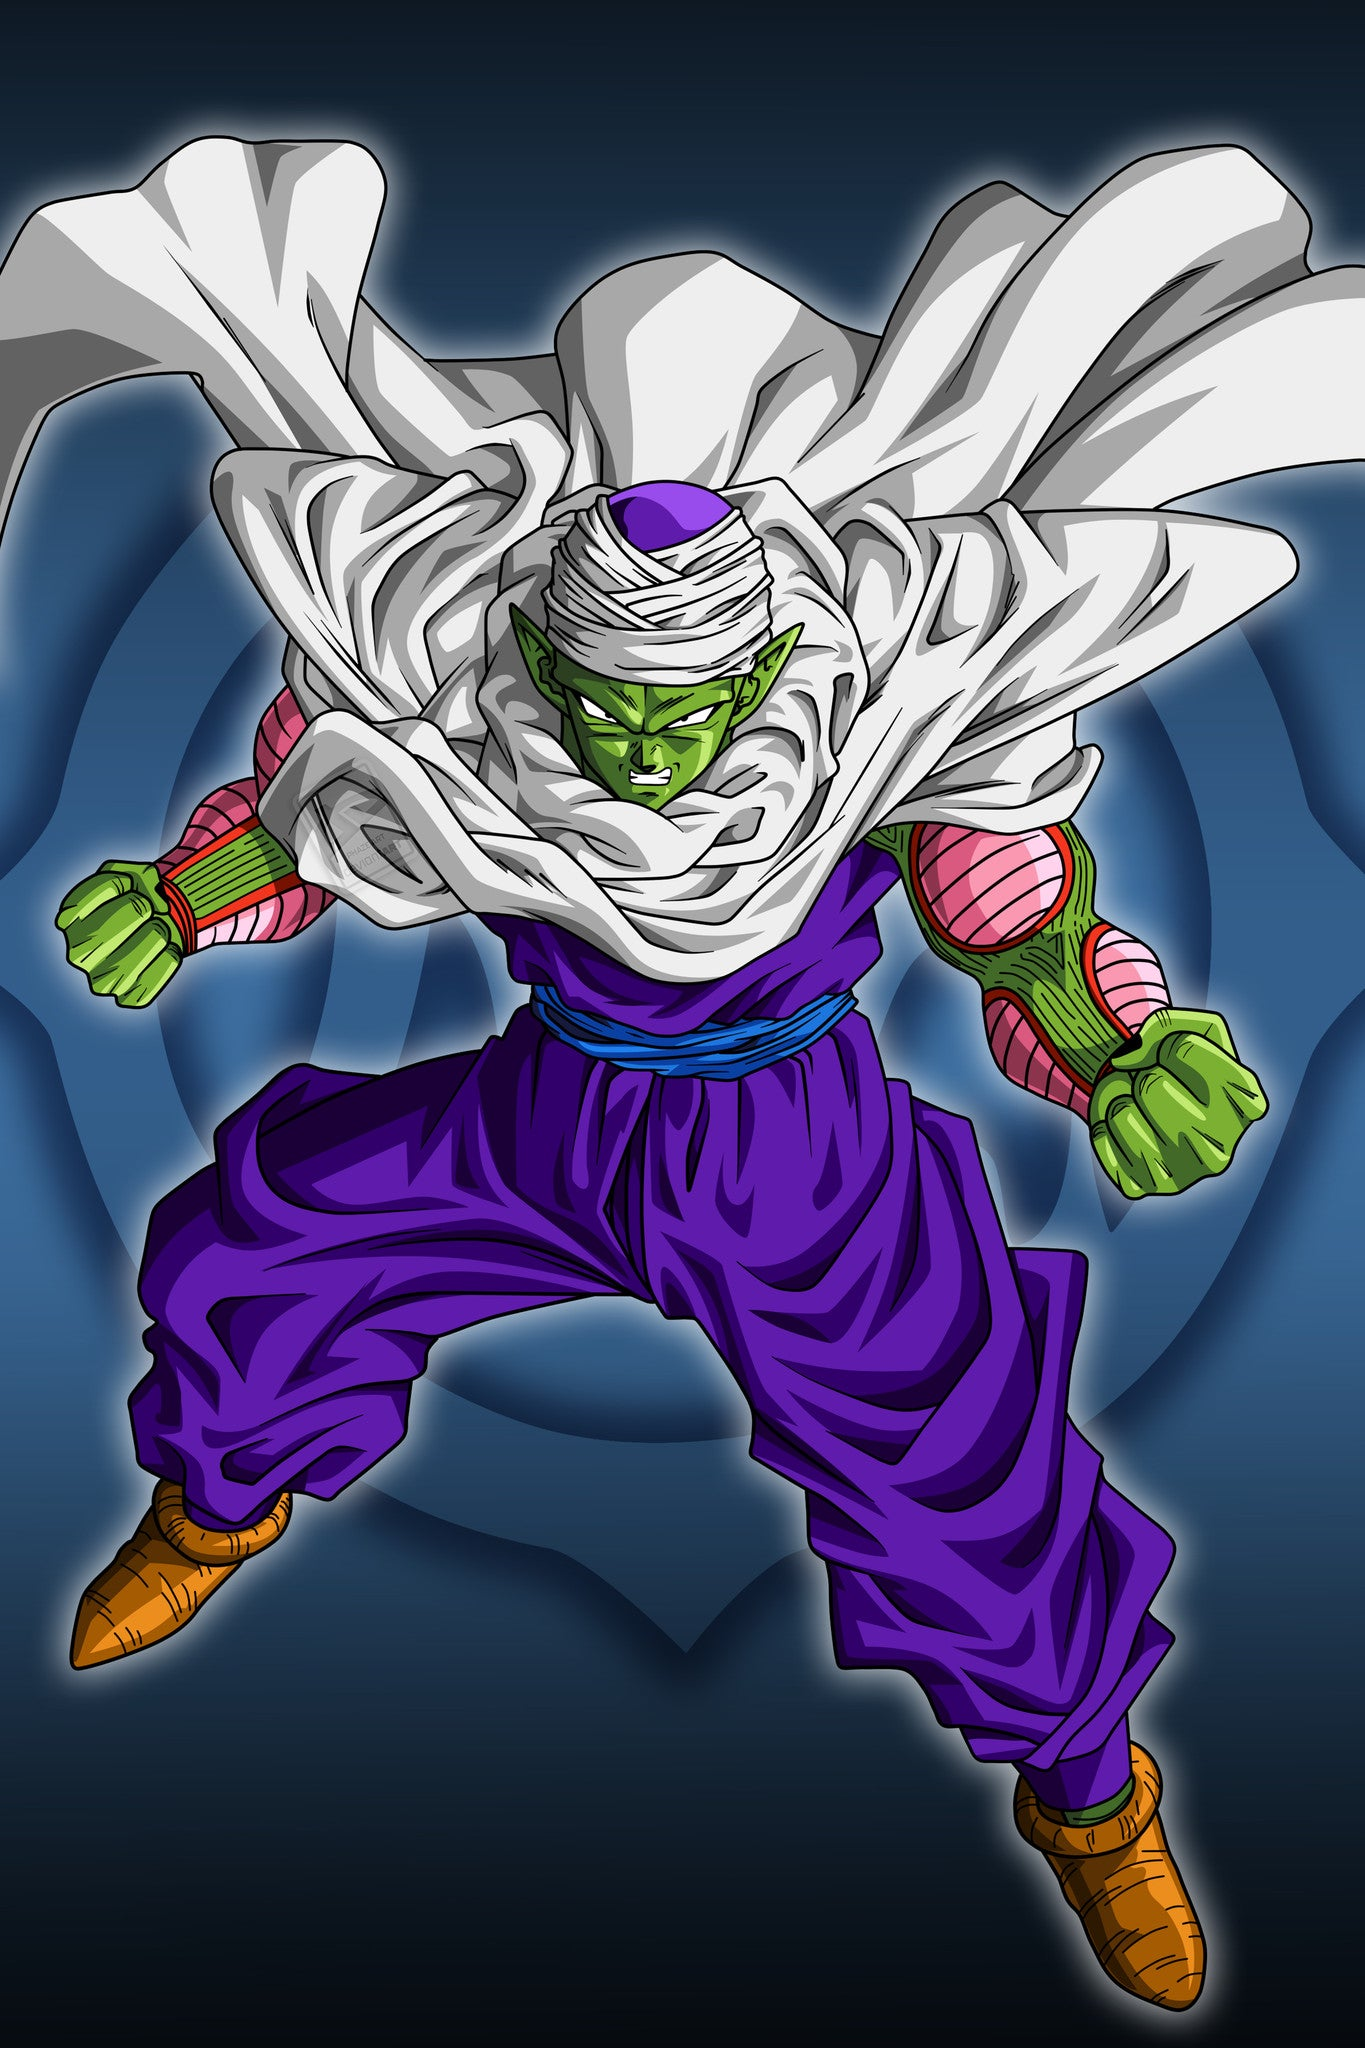 Anime dragon ball z piccolo poster in india silly punter - Dragon ball z image ...